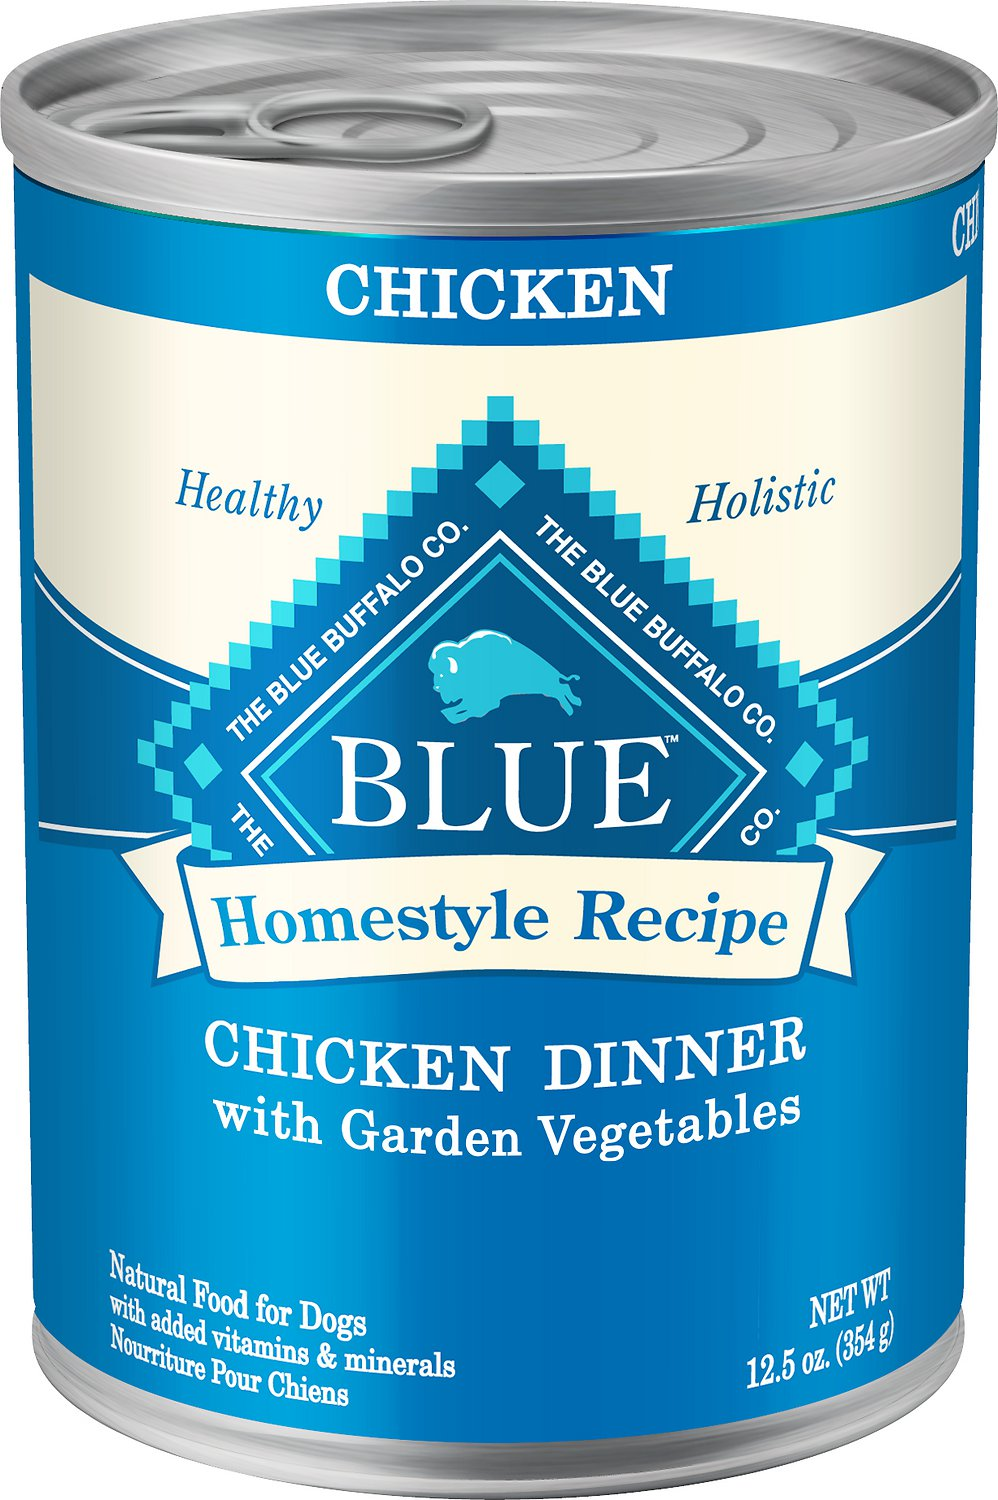 Blue Buffalo Homestyle Recipe Chicken Dinner with Garden Vegetables & Brown Rice Canned Dog Food 12.5z, 12